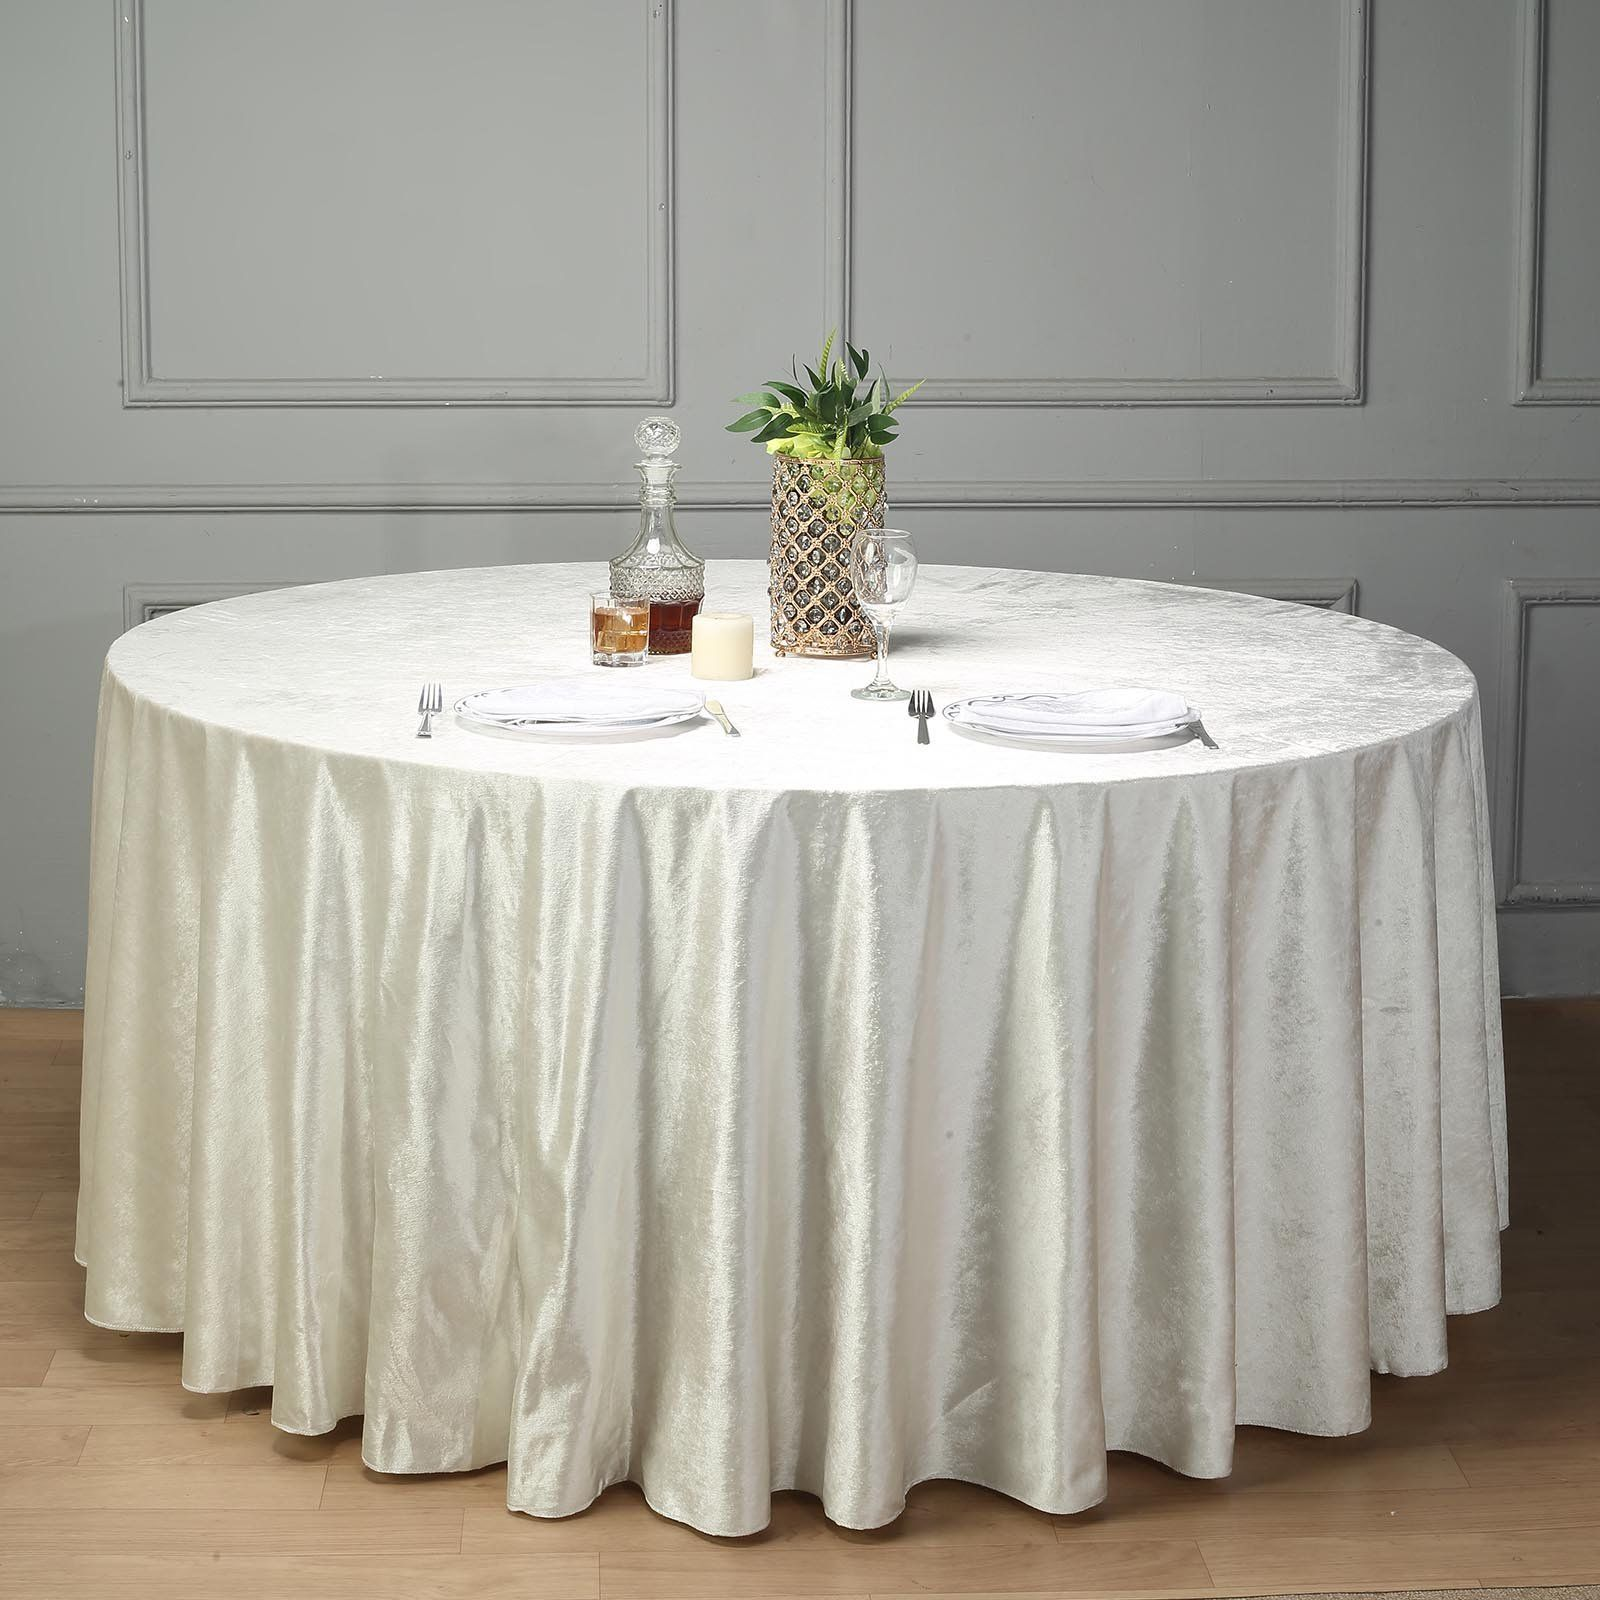 120 Premium Velvet Round Tablecloth Ivory In 2020 Table Cloth Round Tablecloth Tablecloth Sizes